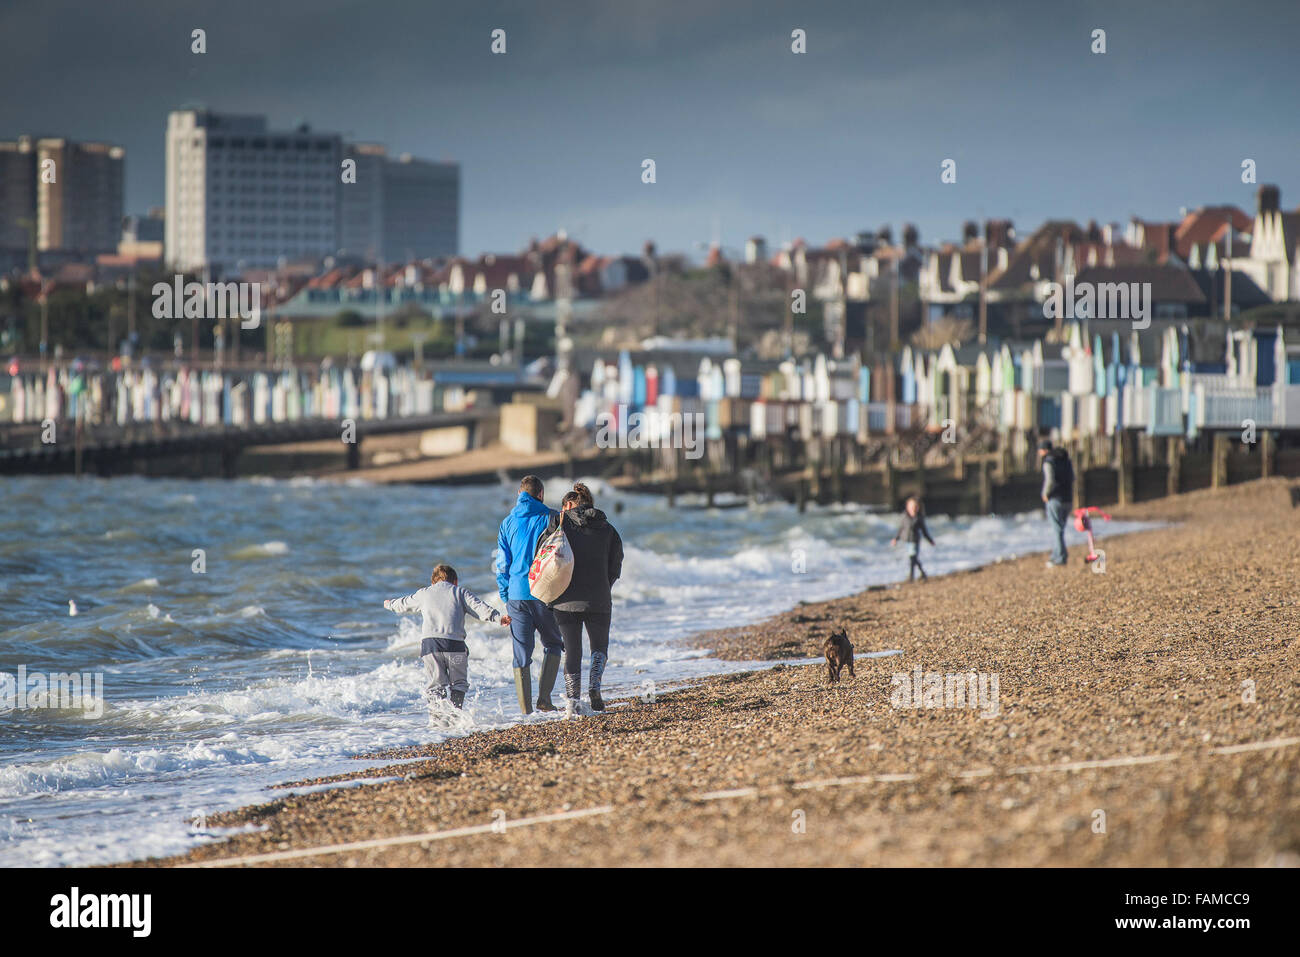 A family walk along the shoreline of Thorpe Bay beach in Southend on Sea, Essex, UK. Stock Photo